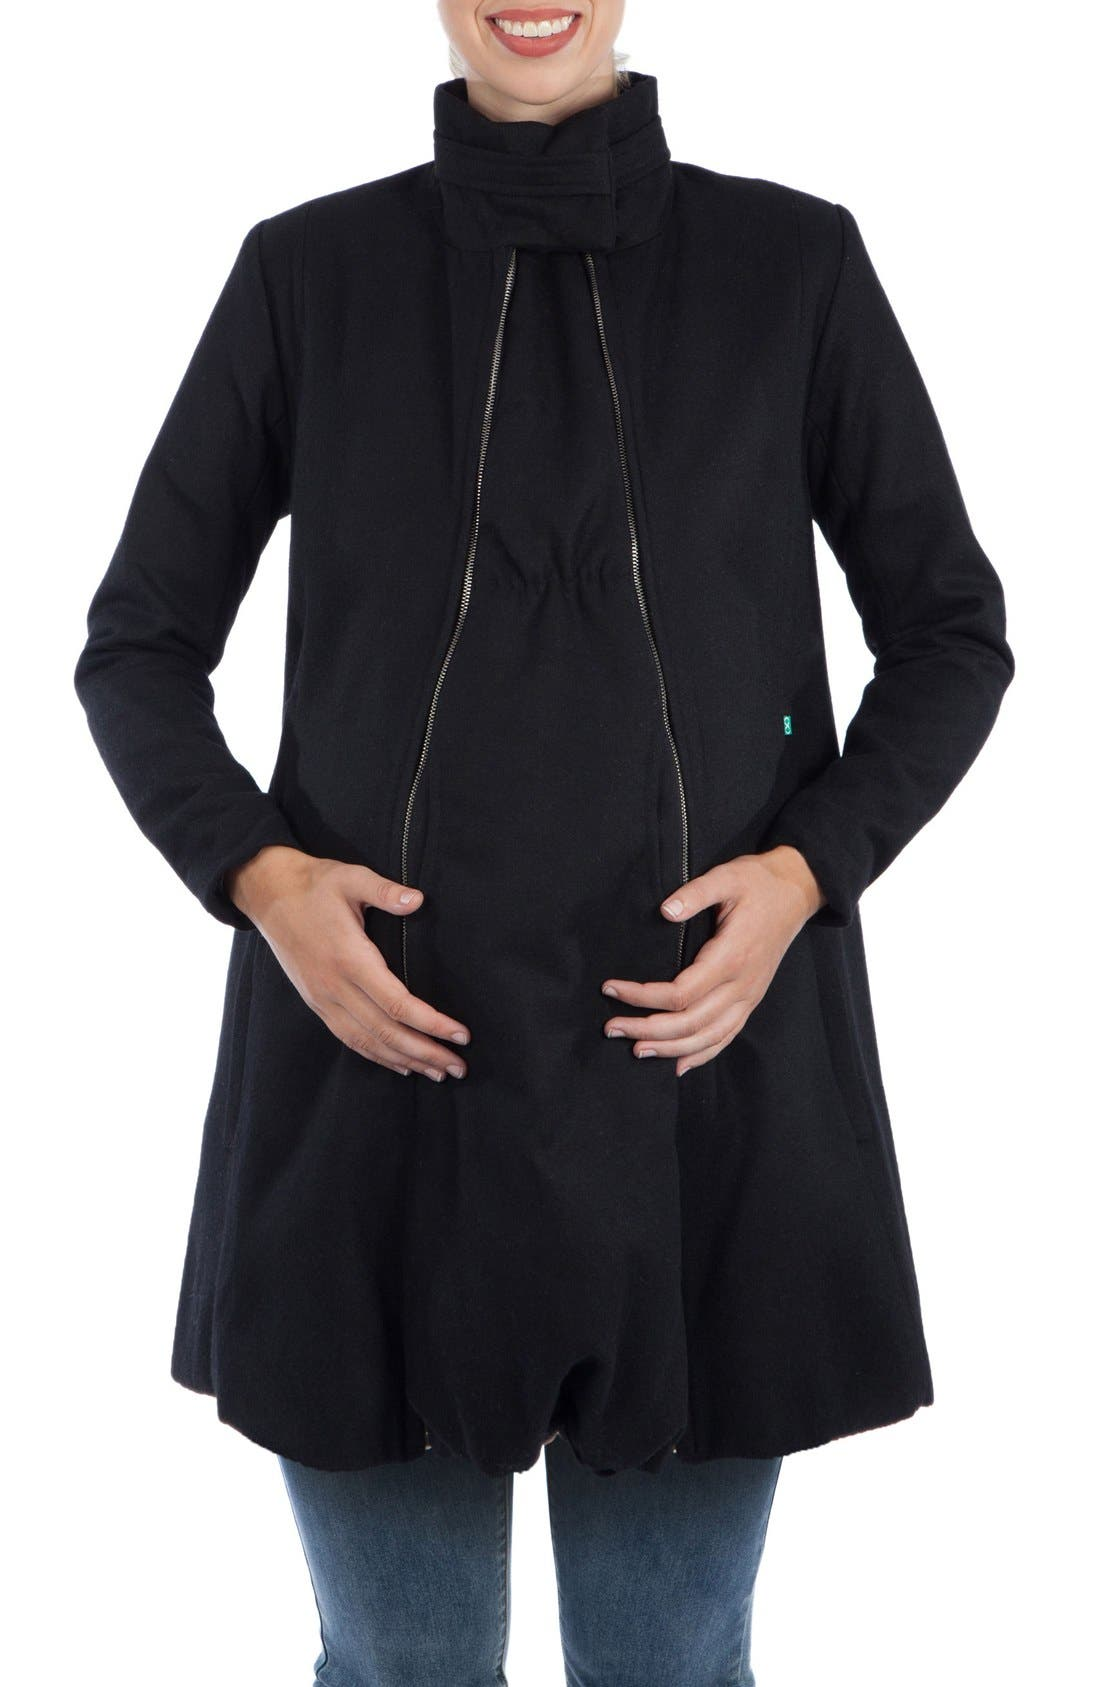 A-Line Convertible 3-in-1 Maternity Swing Coat,                             Main thumbnail 1, color,                             BLACK